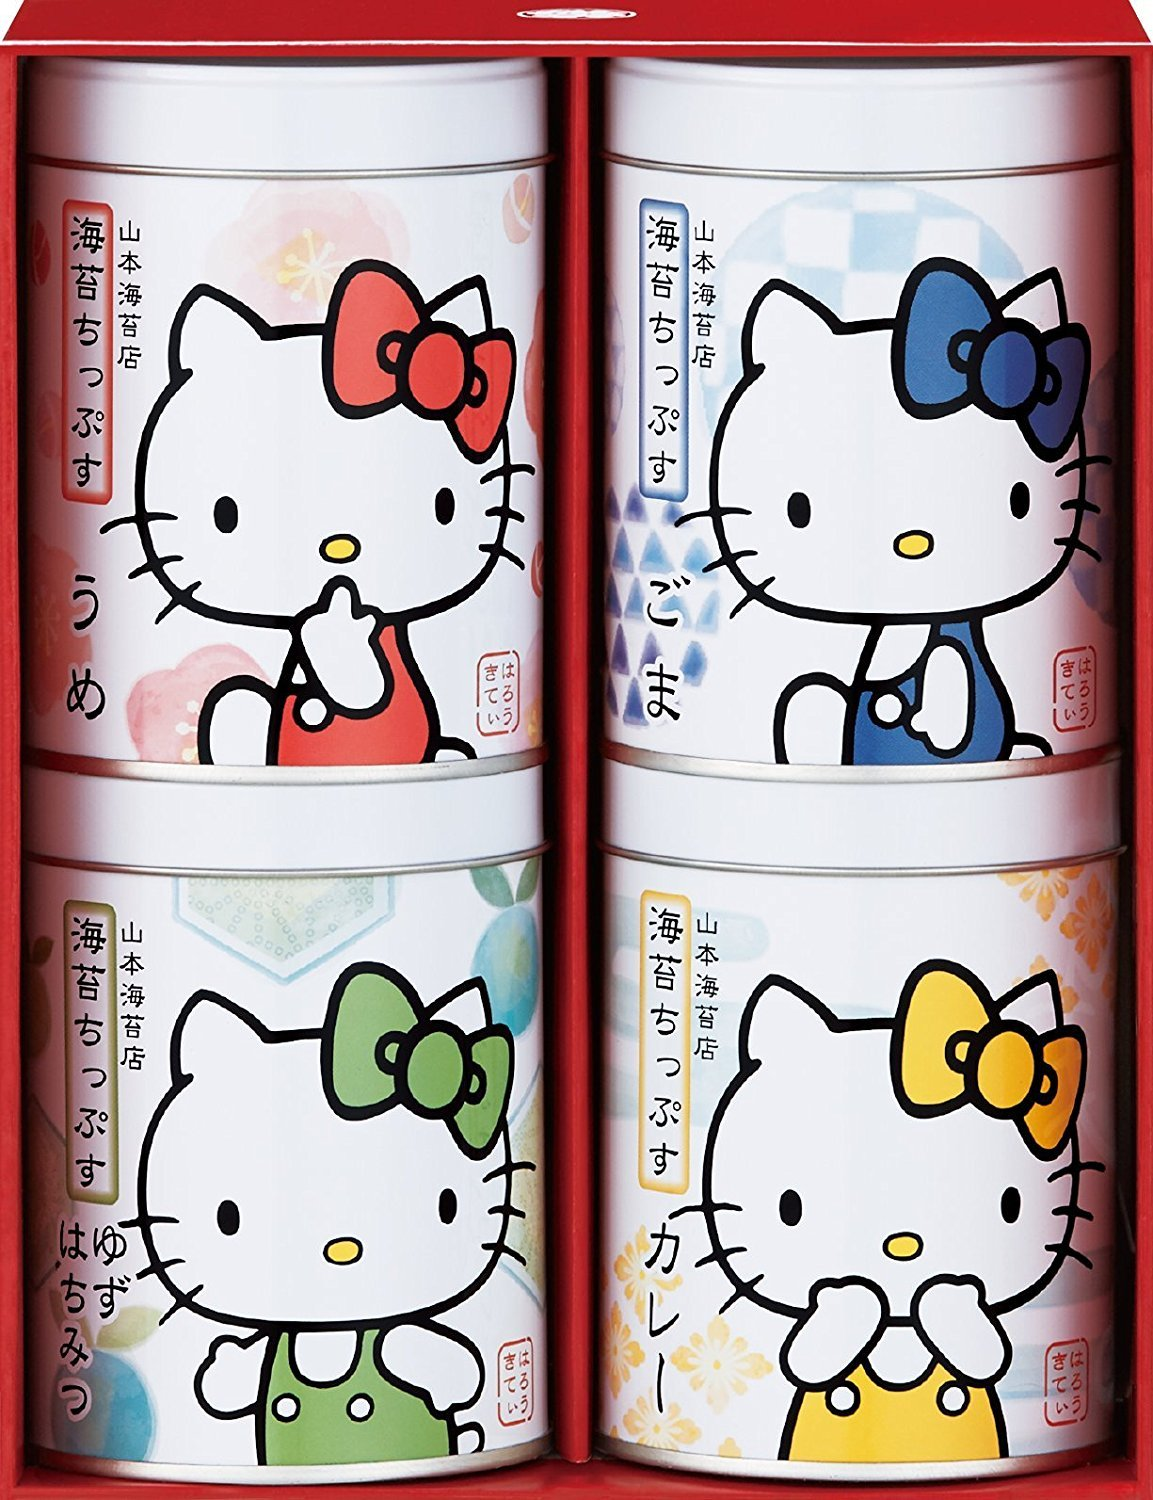 Yamamoto-Noriten x Hello Kitty Seaweed Chips Flavored Seaweed Assorted 4 flavors(Plum, Sesami, Yuzu Honey, Curry) Made in Japan [Japan Import]